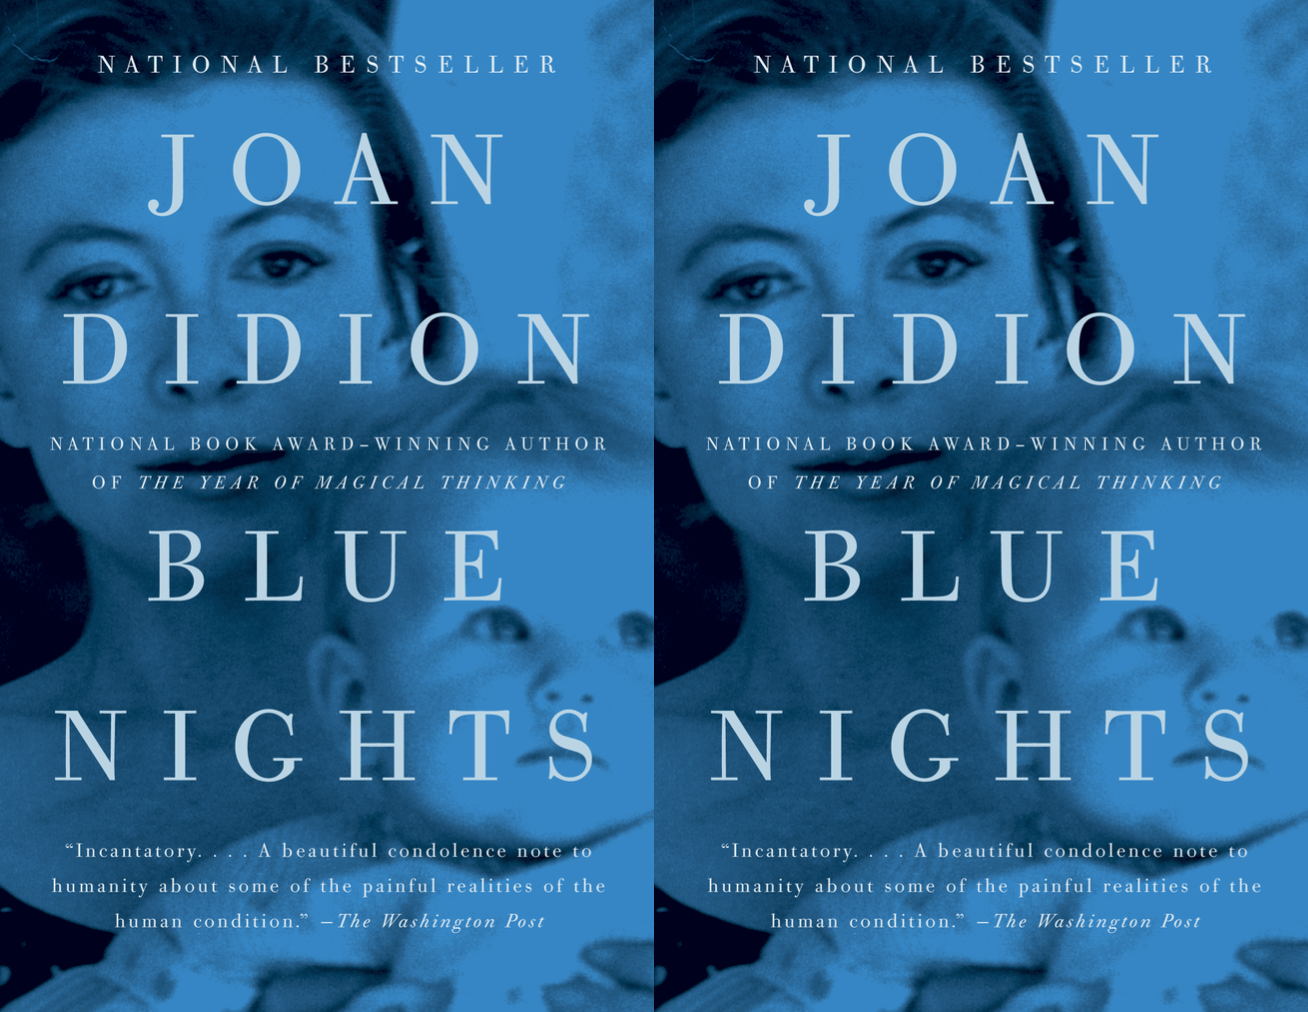 Cover art for Blue Nights by Joan Didion